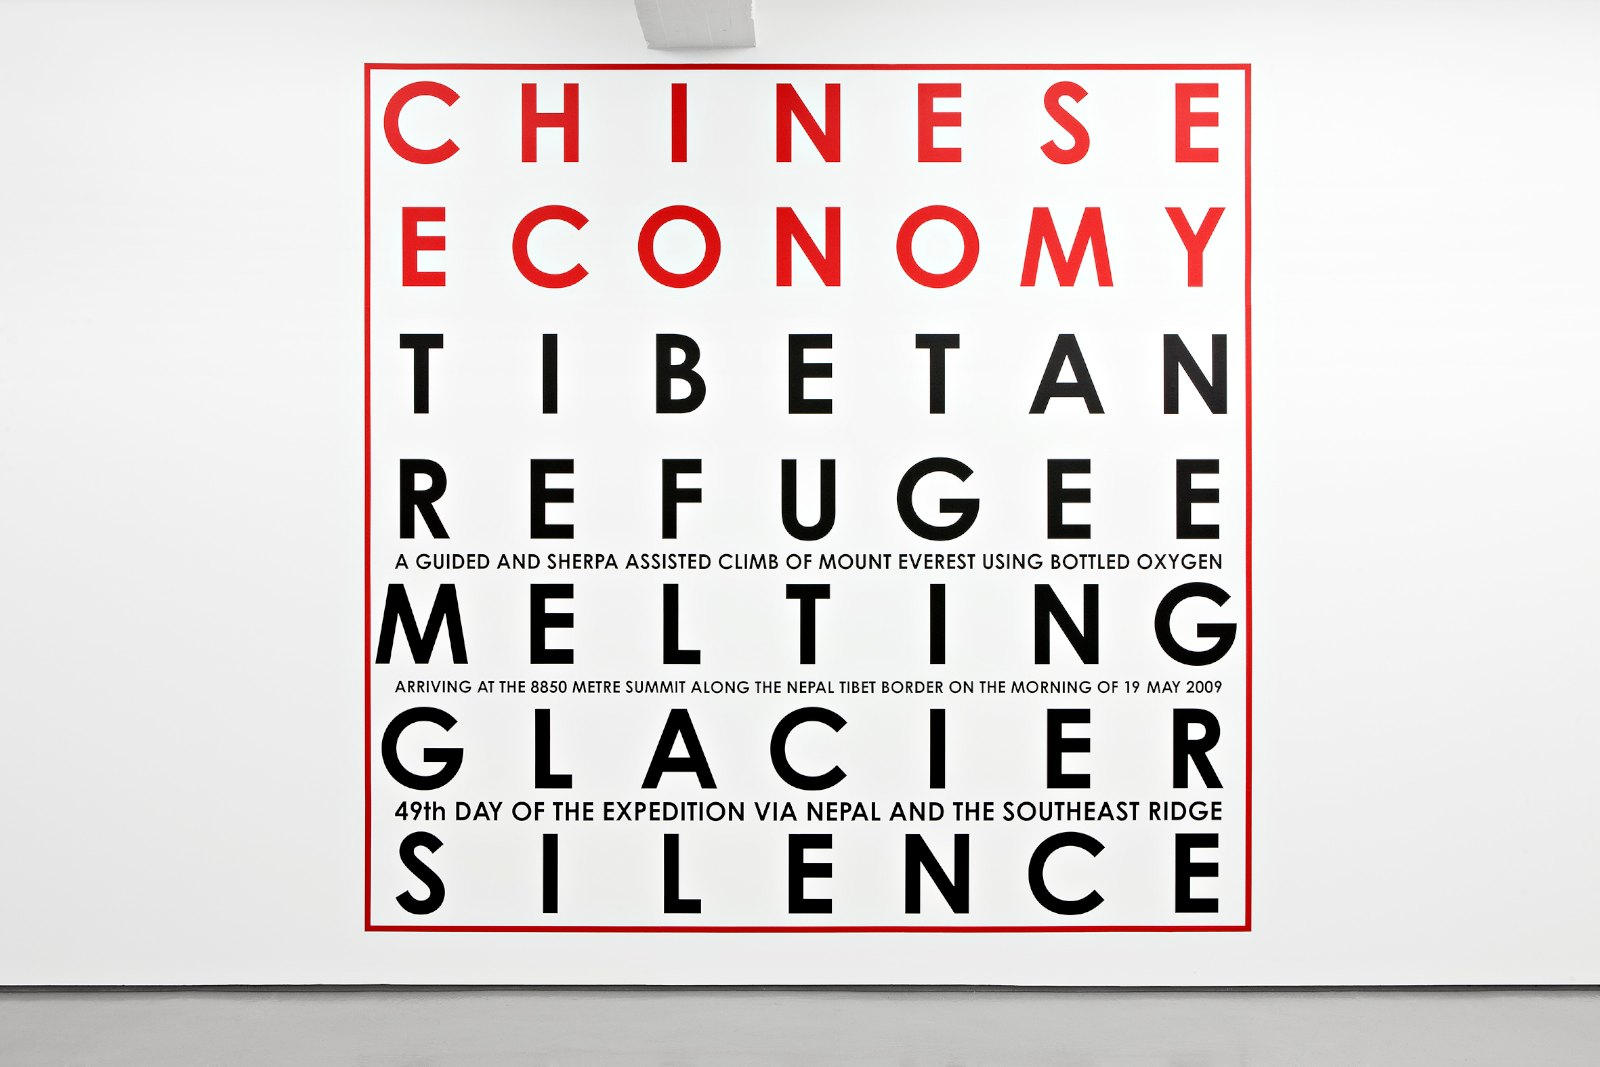 Chinese Economy, Mount Everest 2009,Vinyl text on painted wall, unique, 400 x 410 cm